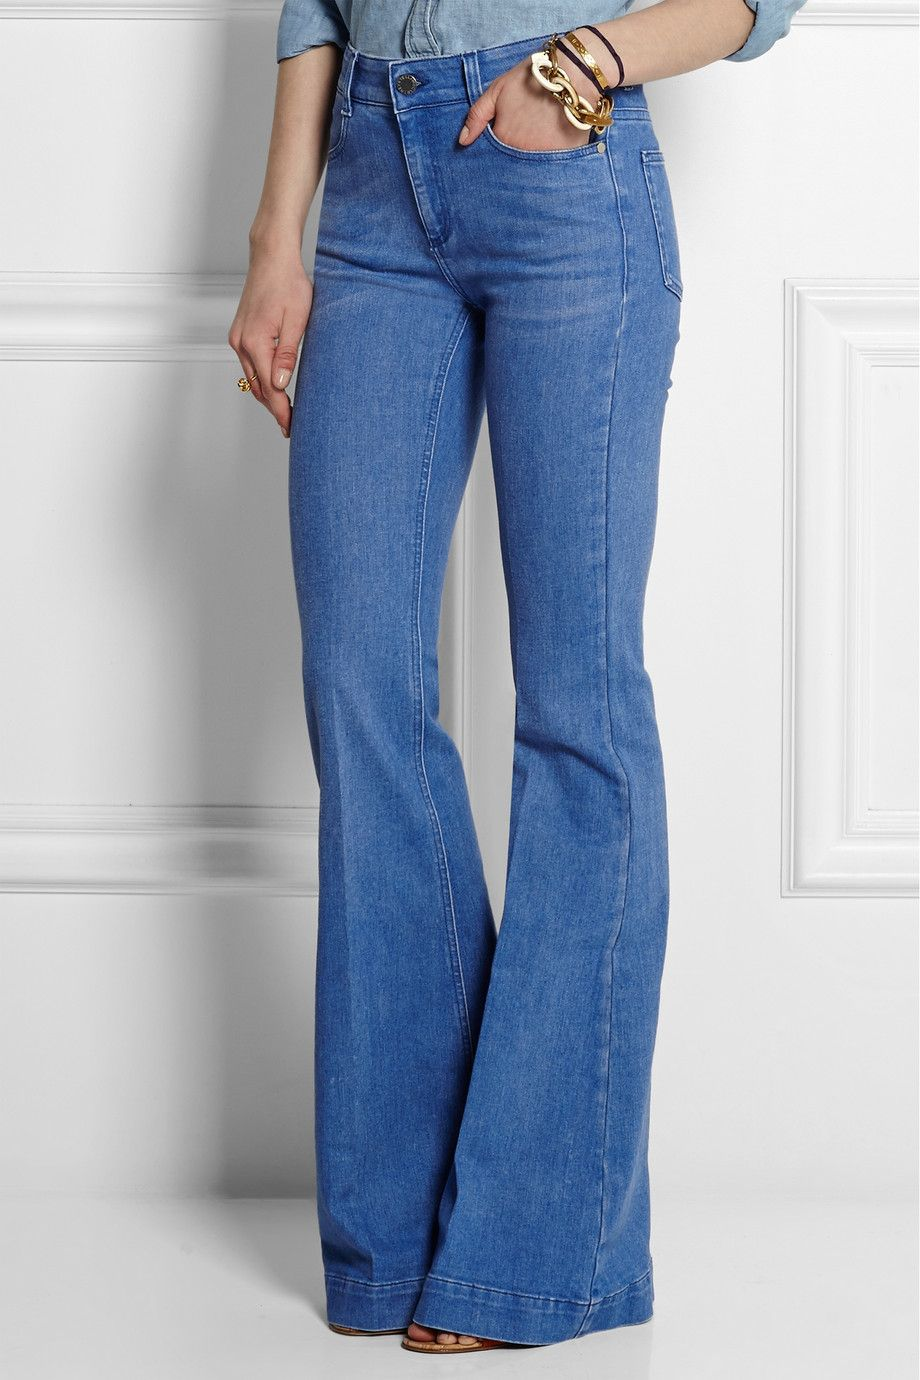 21 Reasons to Trade In Your Skinny Jeans Stat! | Jeans, Flare and ...